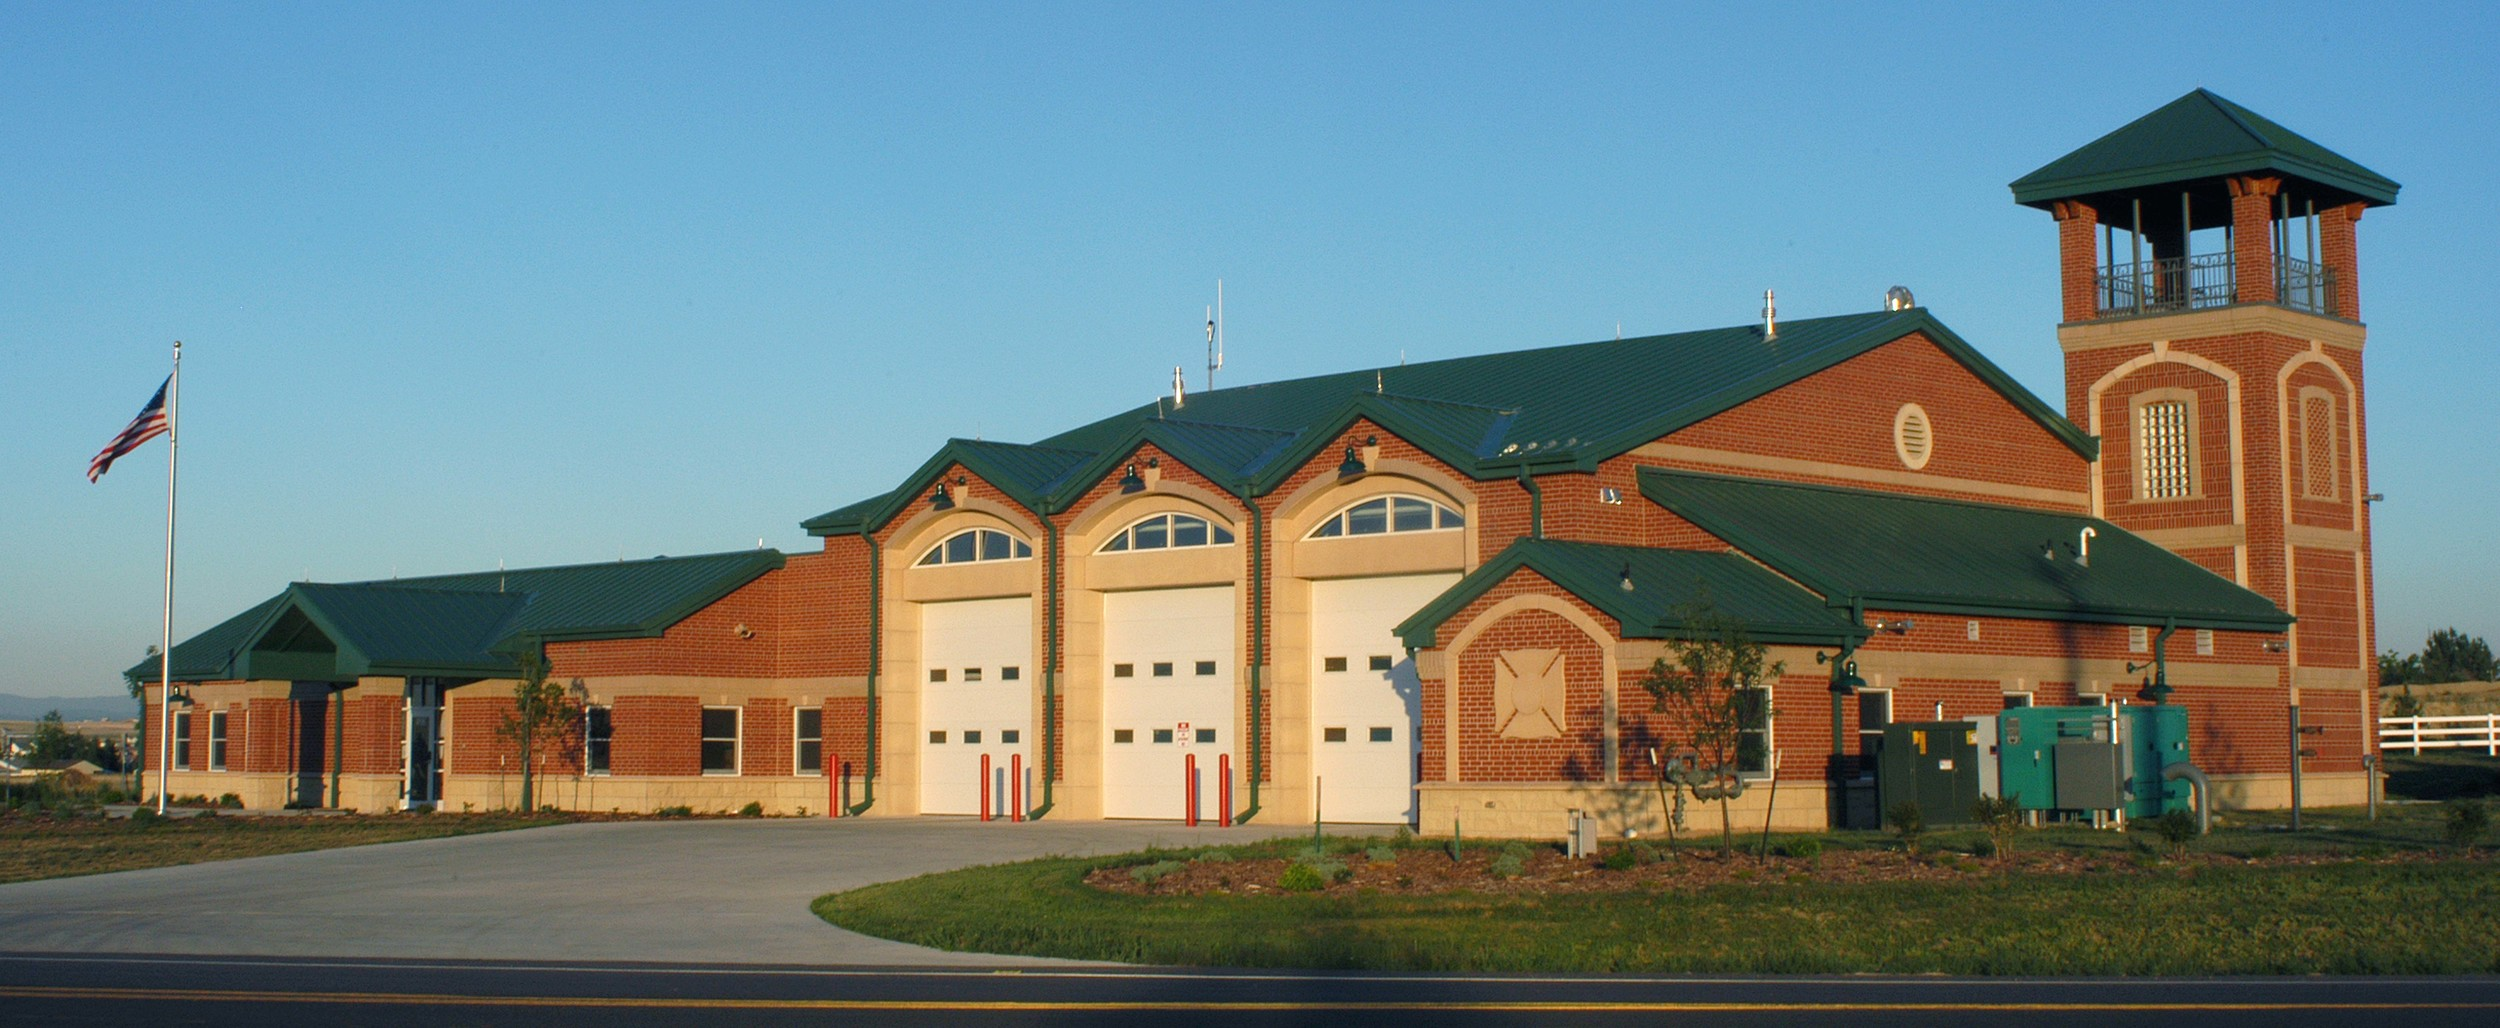 TODD CREEK FIRE STATION - 10,900 SF station with (3) apparatus bays and smoke tower